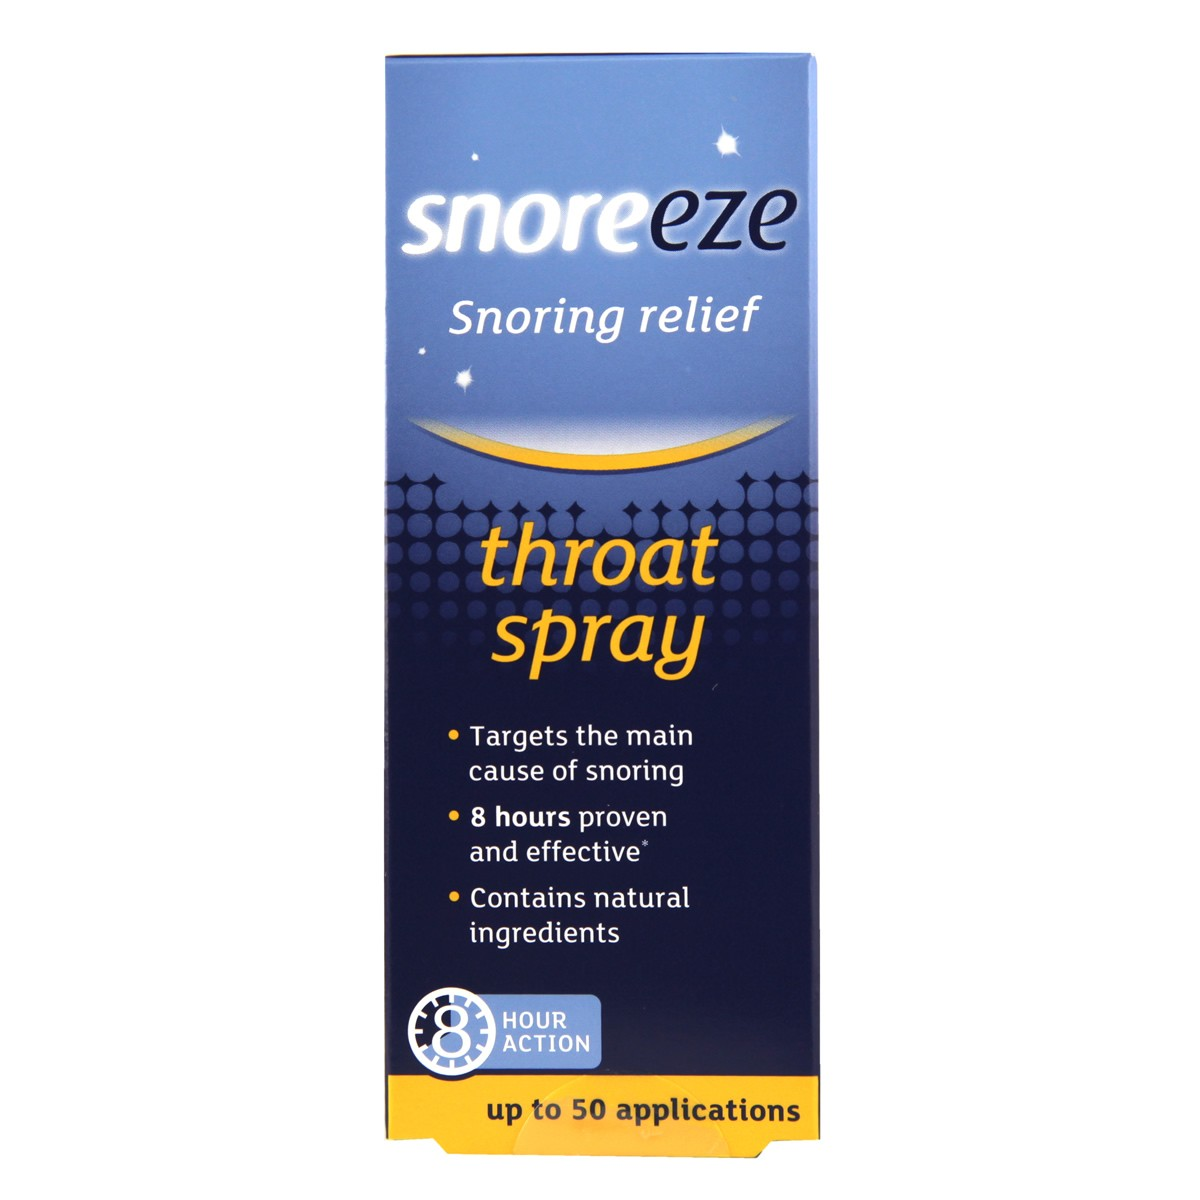 snoreeze snoring relief throat spray hr